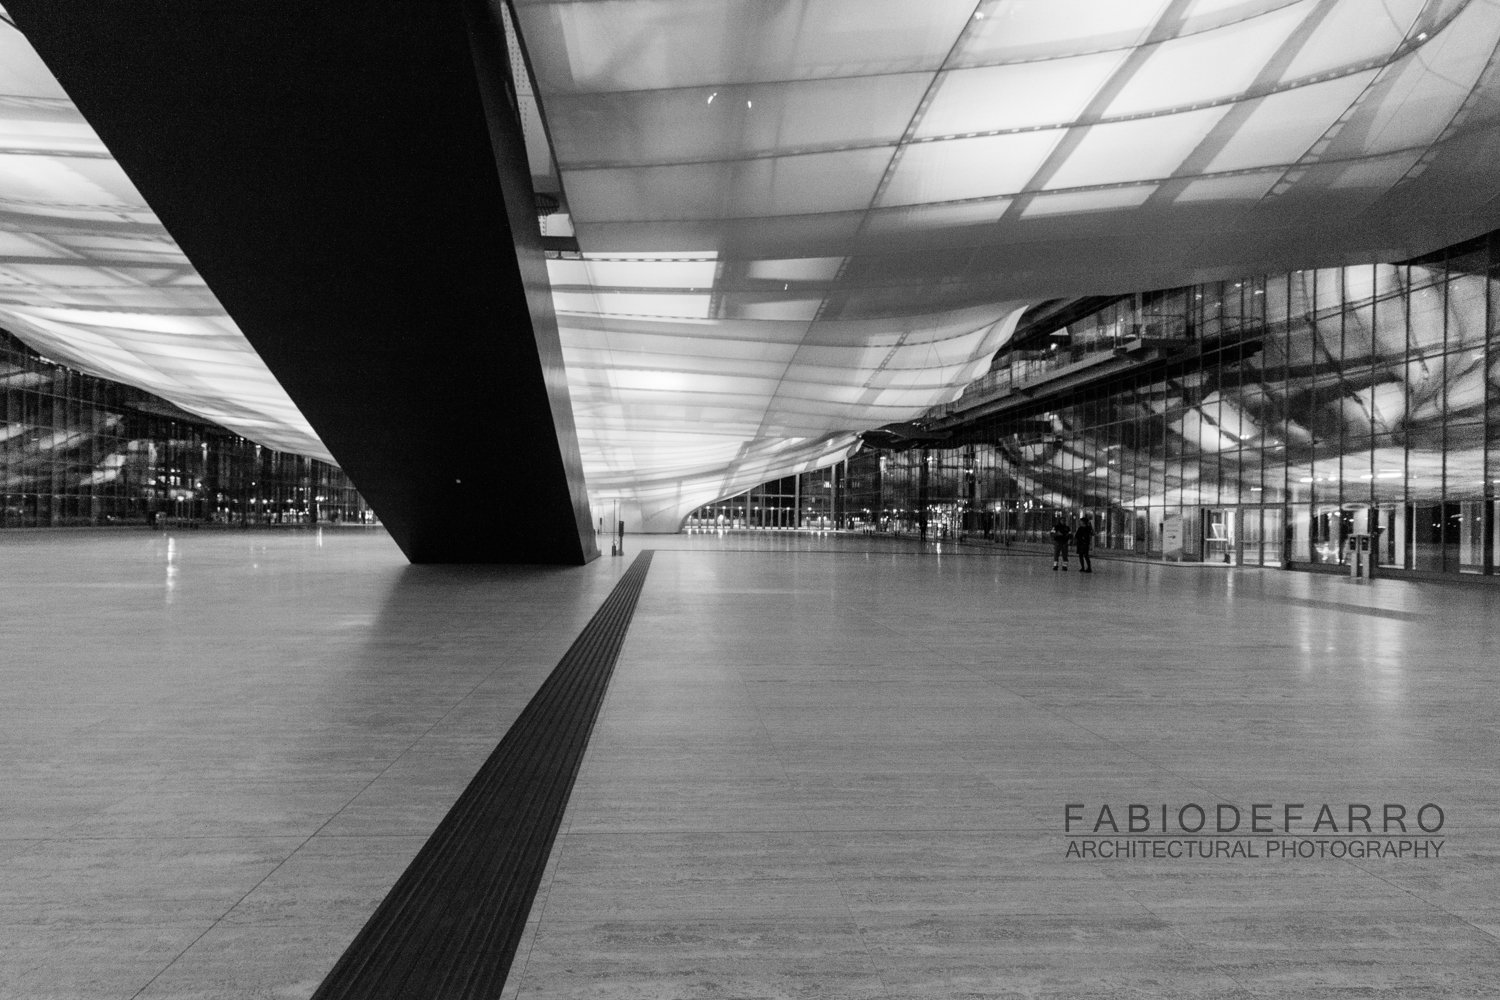 Convention Center - Rome The Cloud - Fuxas Studio - Ground level distribution - exhibition areas